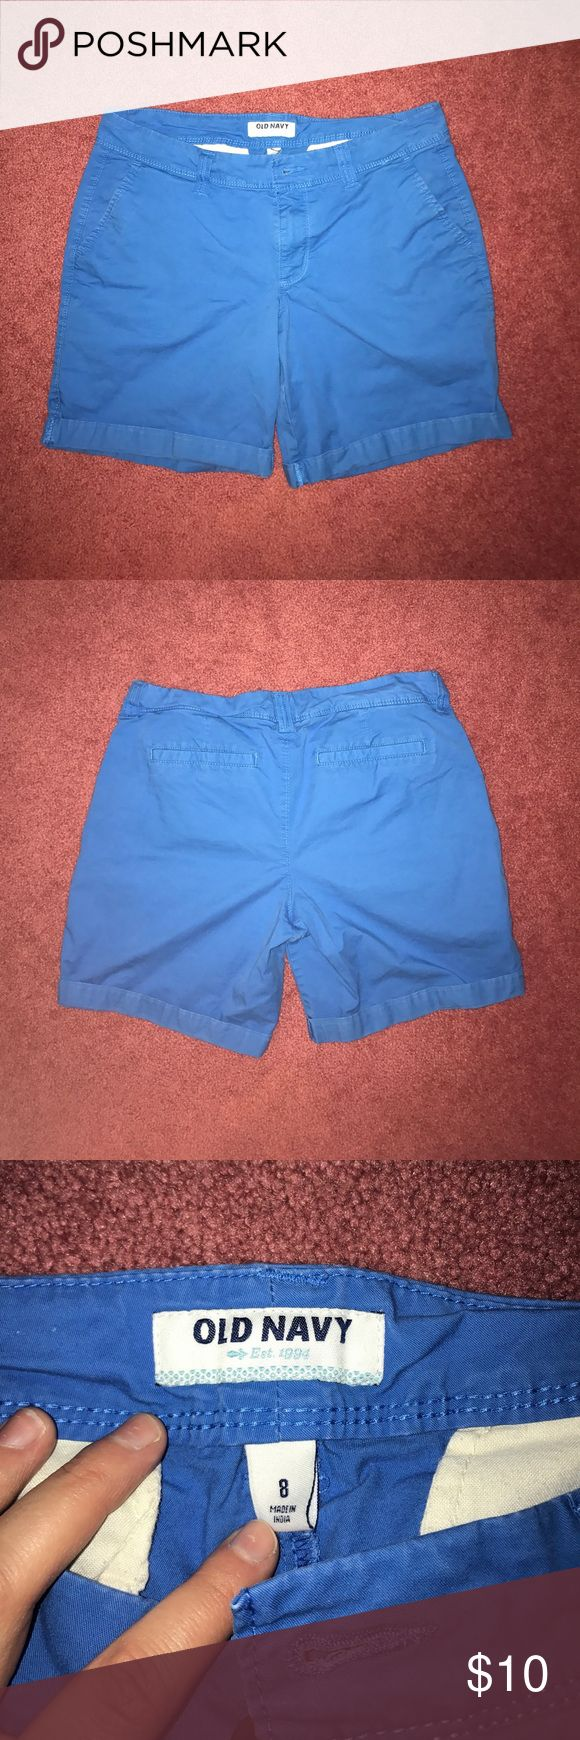 Cobalt blue Navy Blue Roll up Bermuda shorts Cobalt blue Navy Blue Roll up Bermuda shorts, size 8, gently used! Old Navy Shorts Bermudas